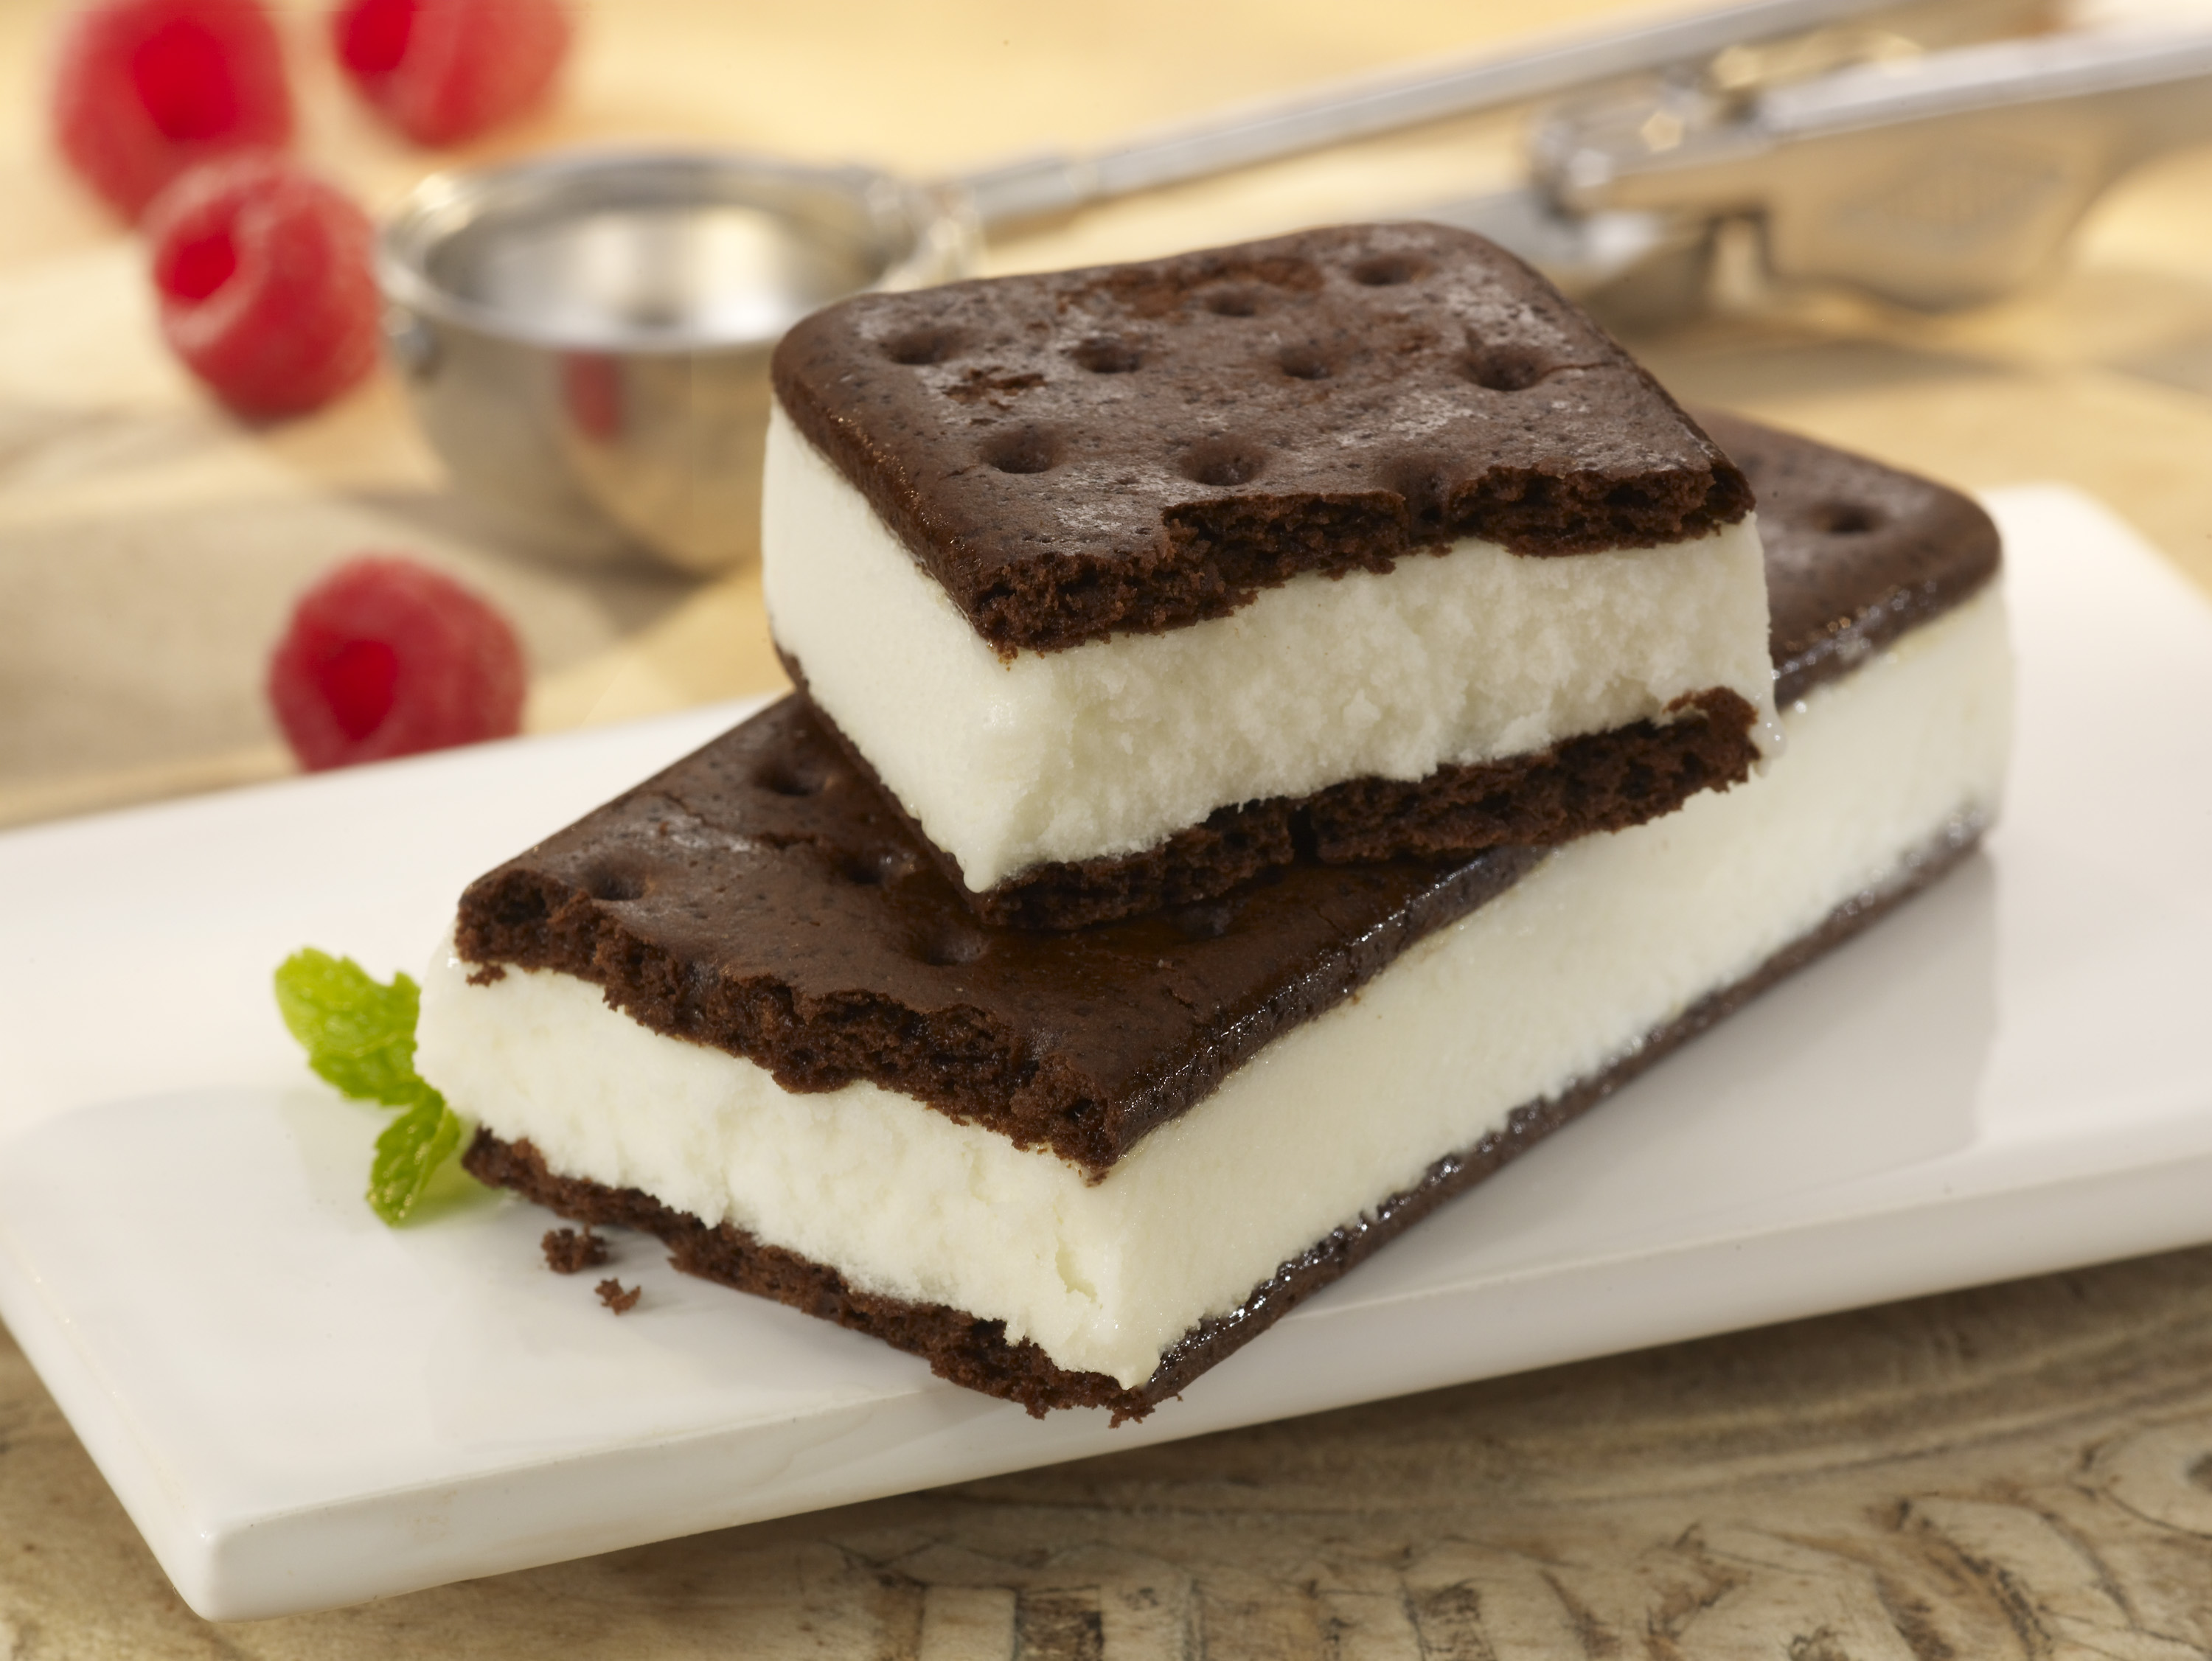 August 2nd is National Ice Cream Sandwich Day!